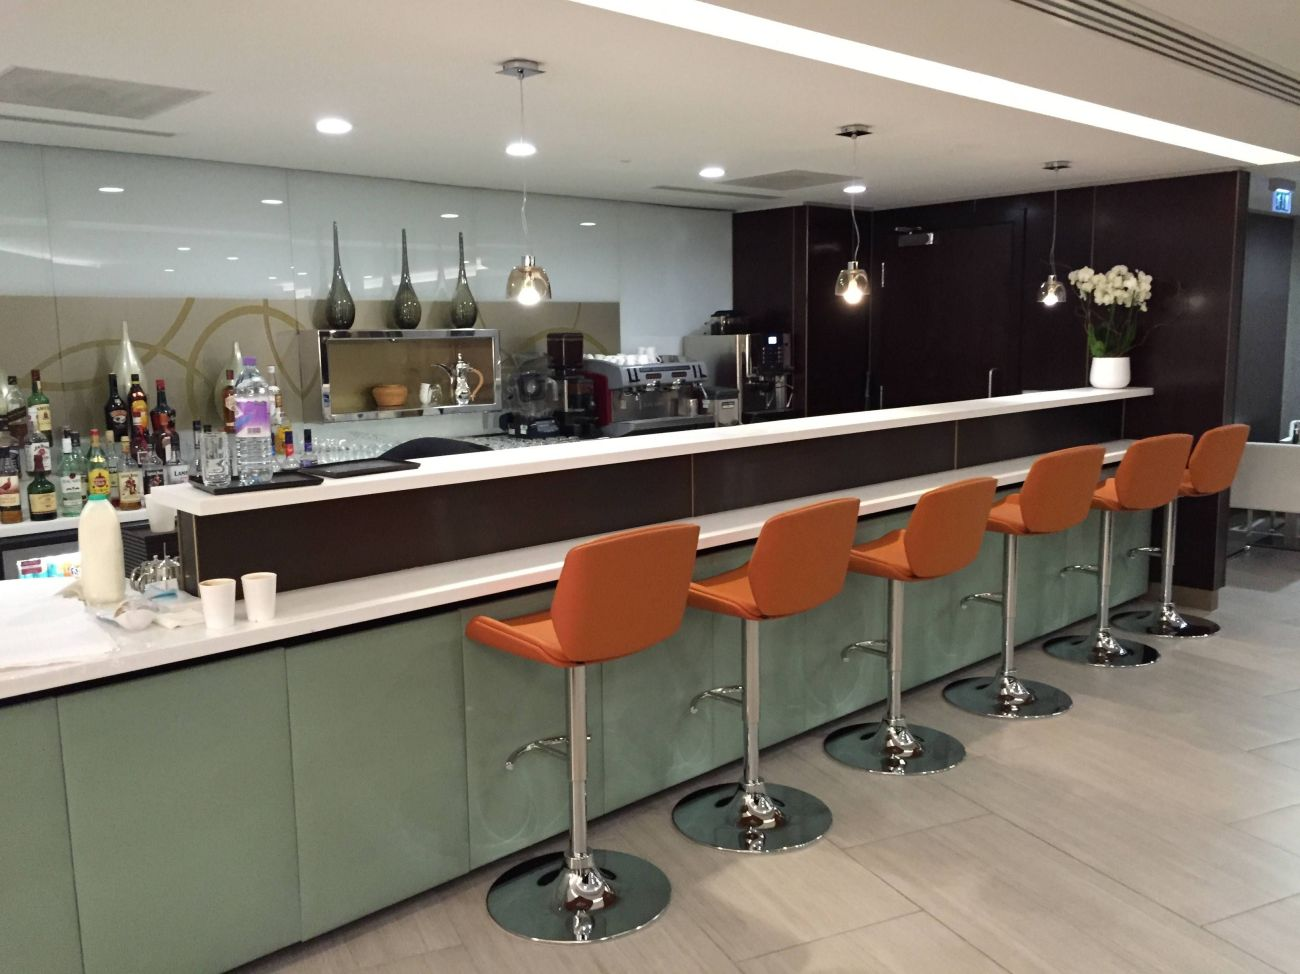 Etihad Lounge London Heathrow - Passageirodeprimeira 13